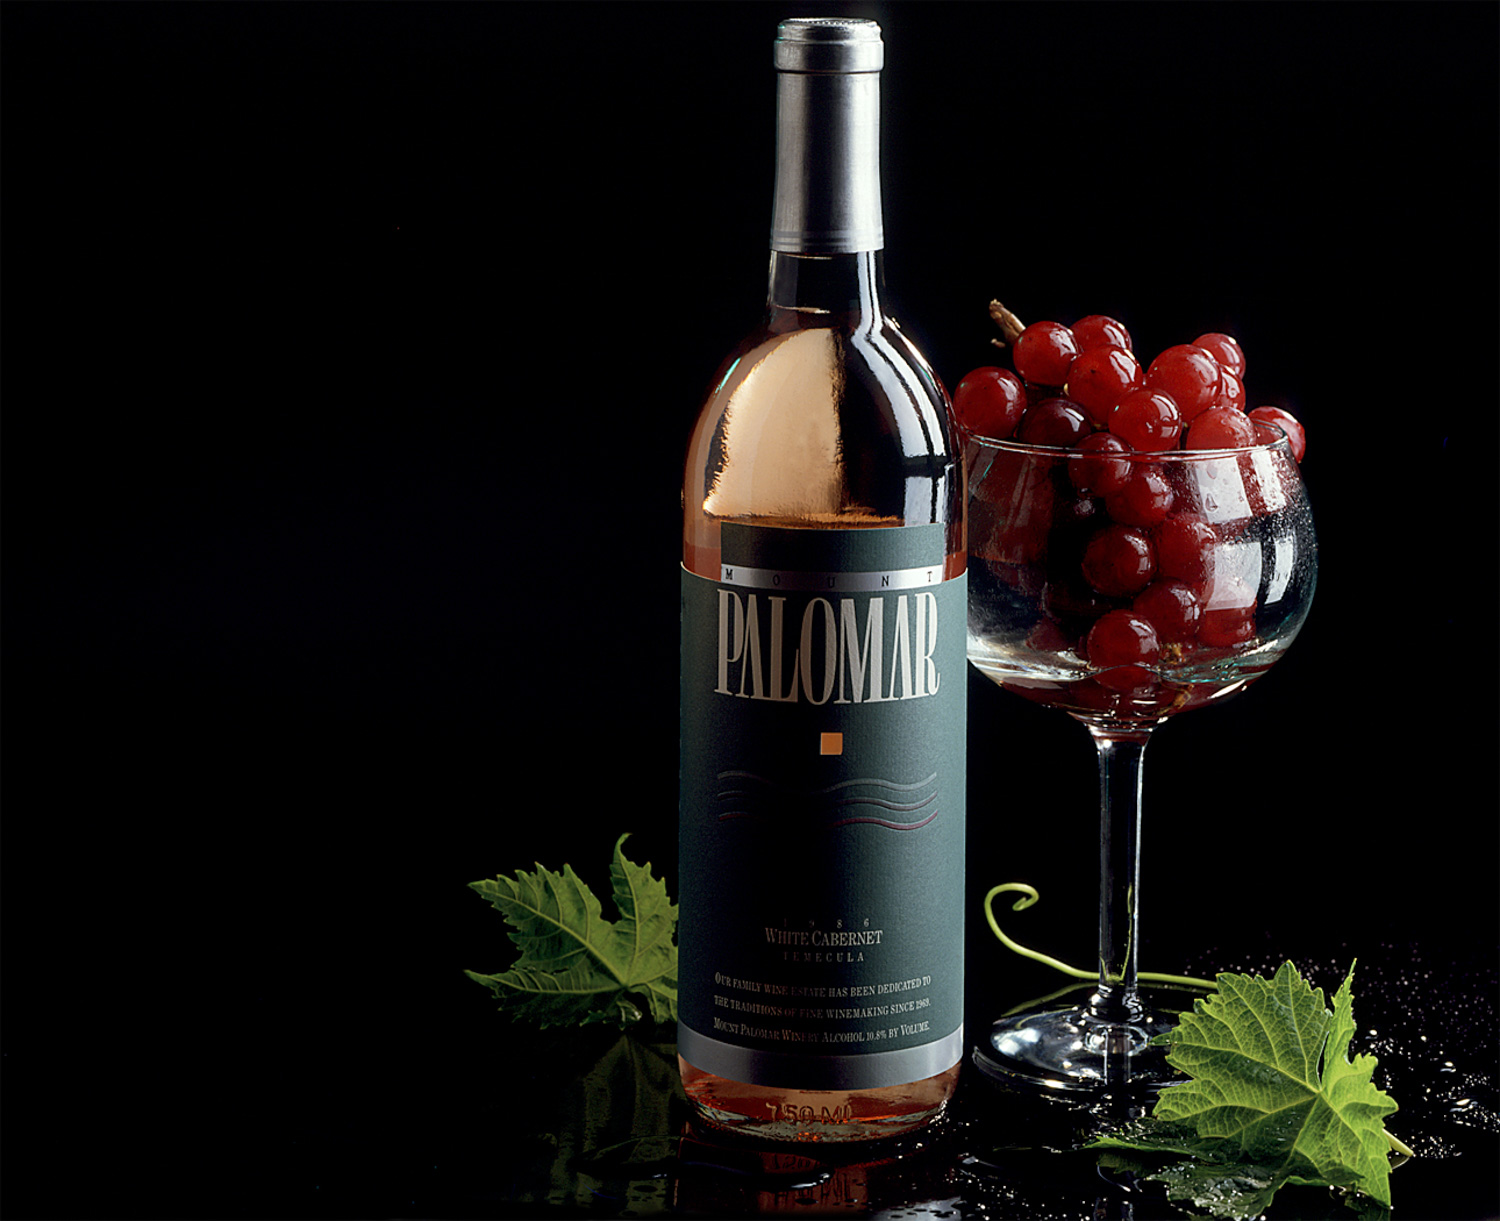 Client:  Palomar Winery